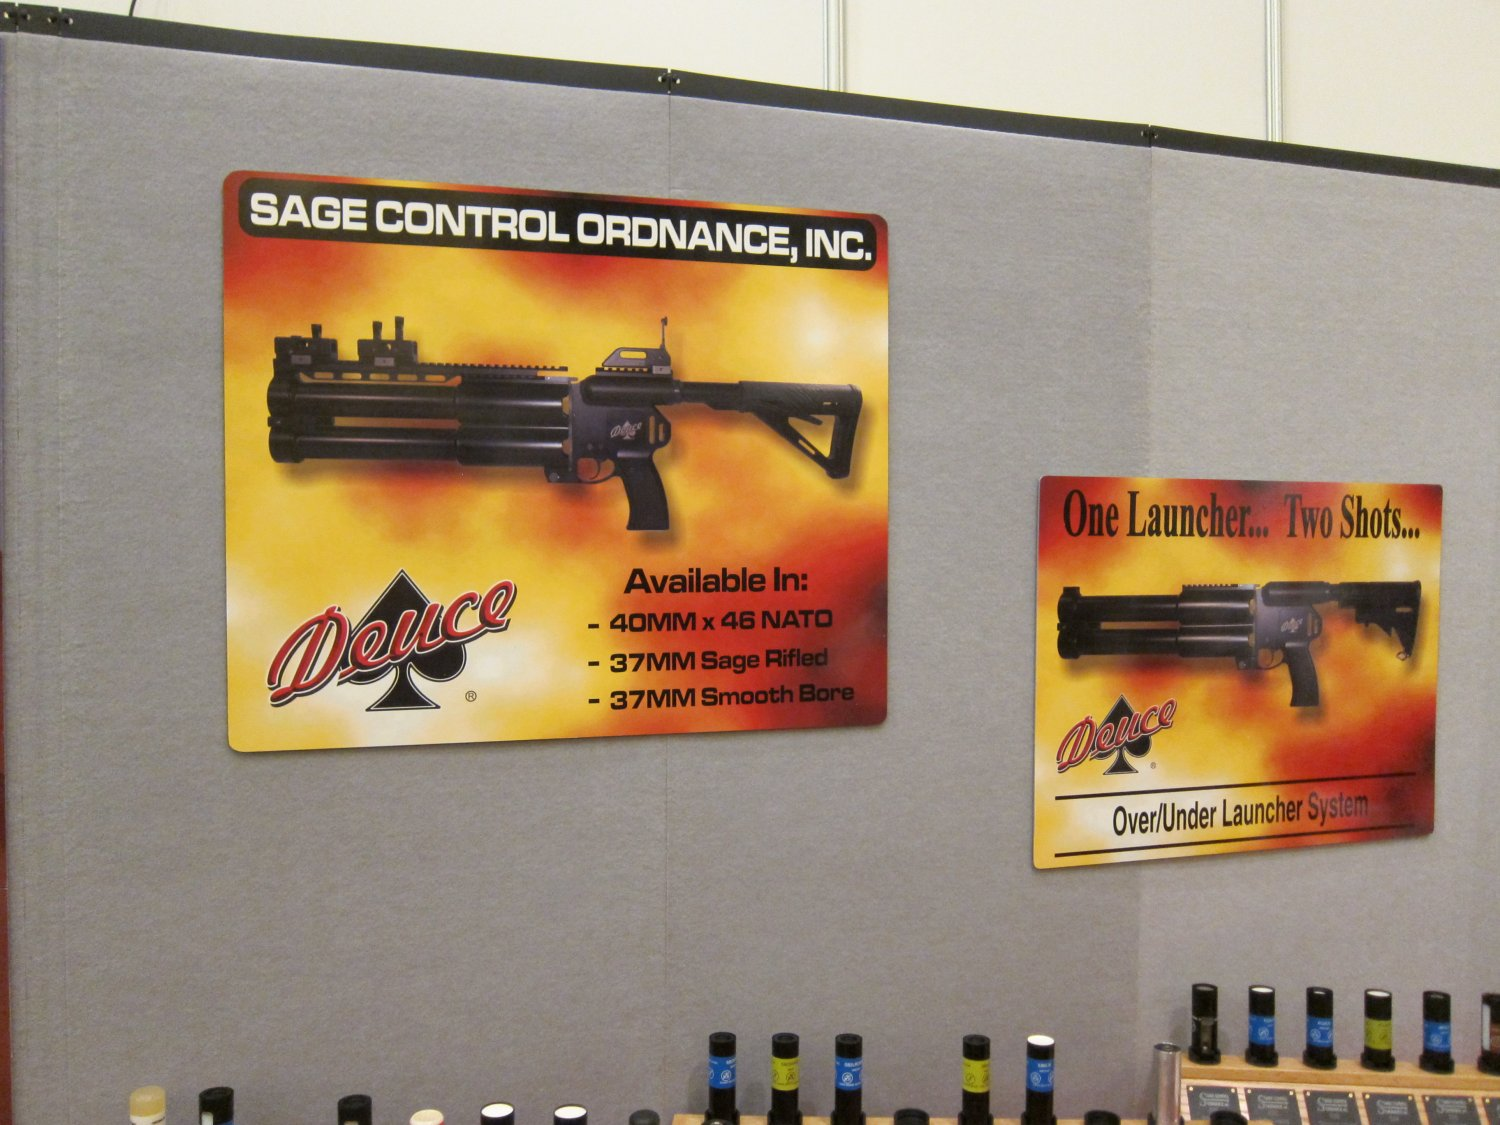 Sage Ordnance Systems Deuce Dual 40mm Grenade Launcher SHOT Show 2011 3 <!  :en  >Sage Ordnance Systems Deuce Over/Under Dual 40mm (40x46mm NATO)/37mm Sage Rifled/37mm Smooth Bore Grenade Launcher and Prototype Mag Fed Semi Auto 37mm Grenade Launcher <!  :  >